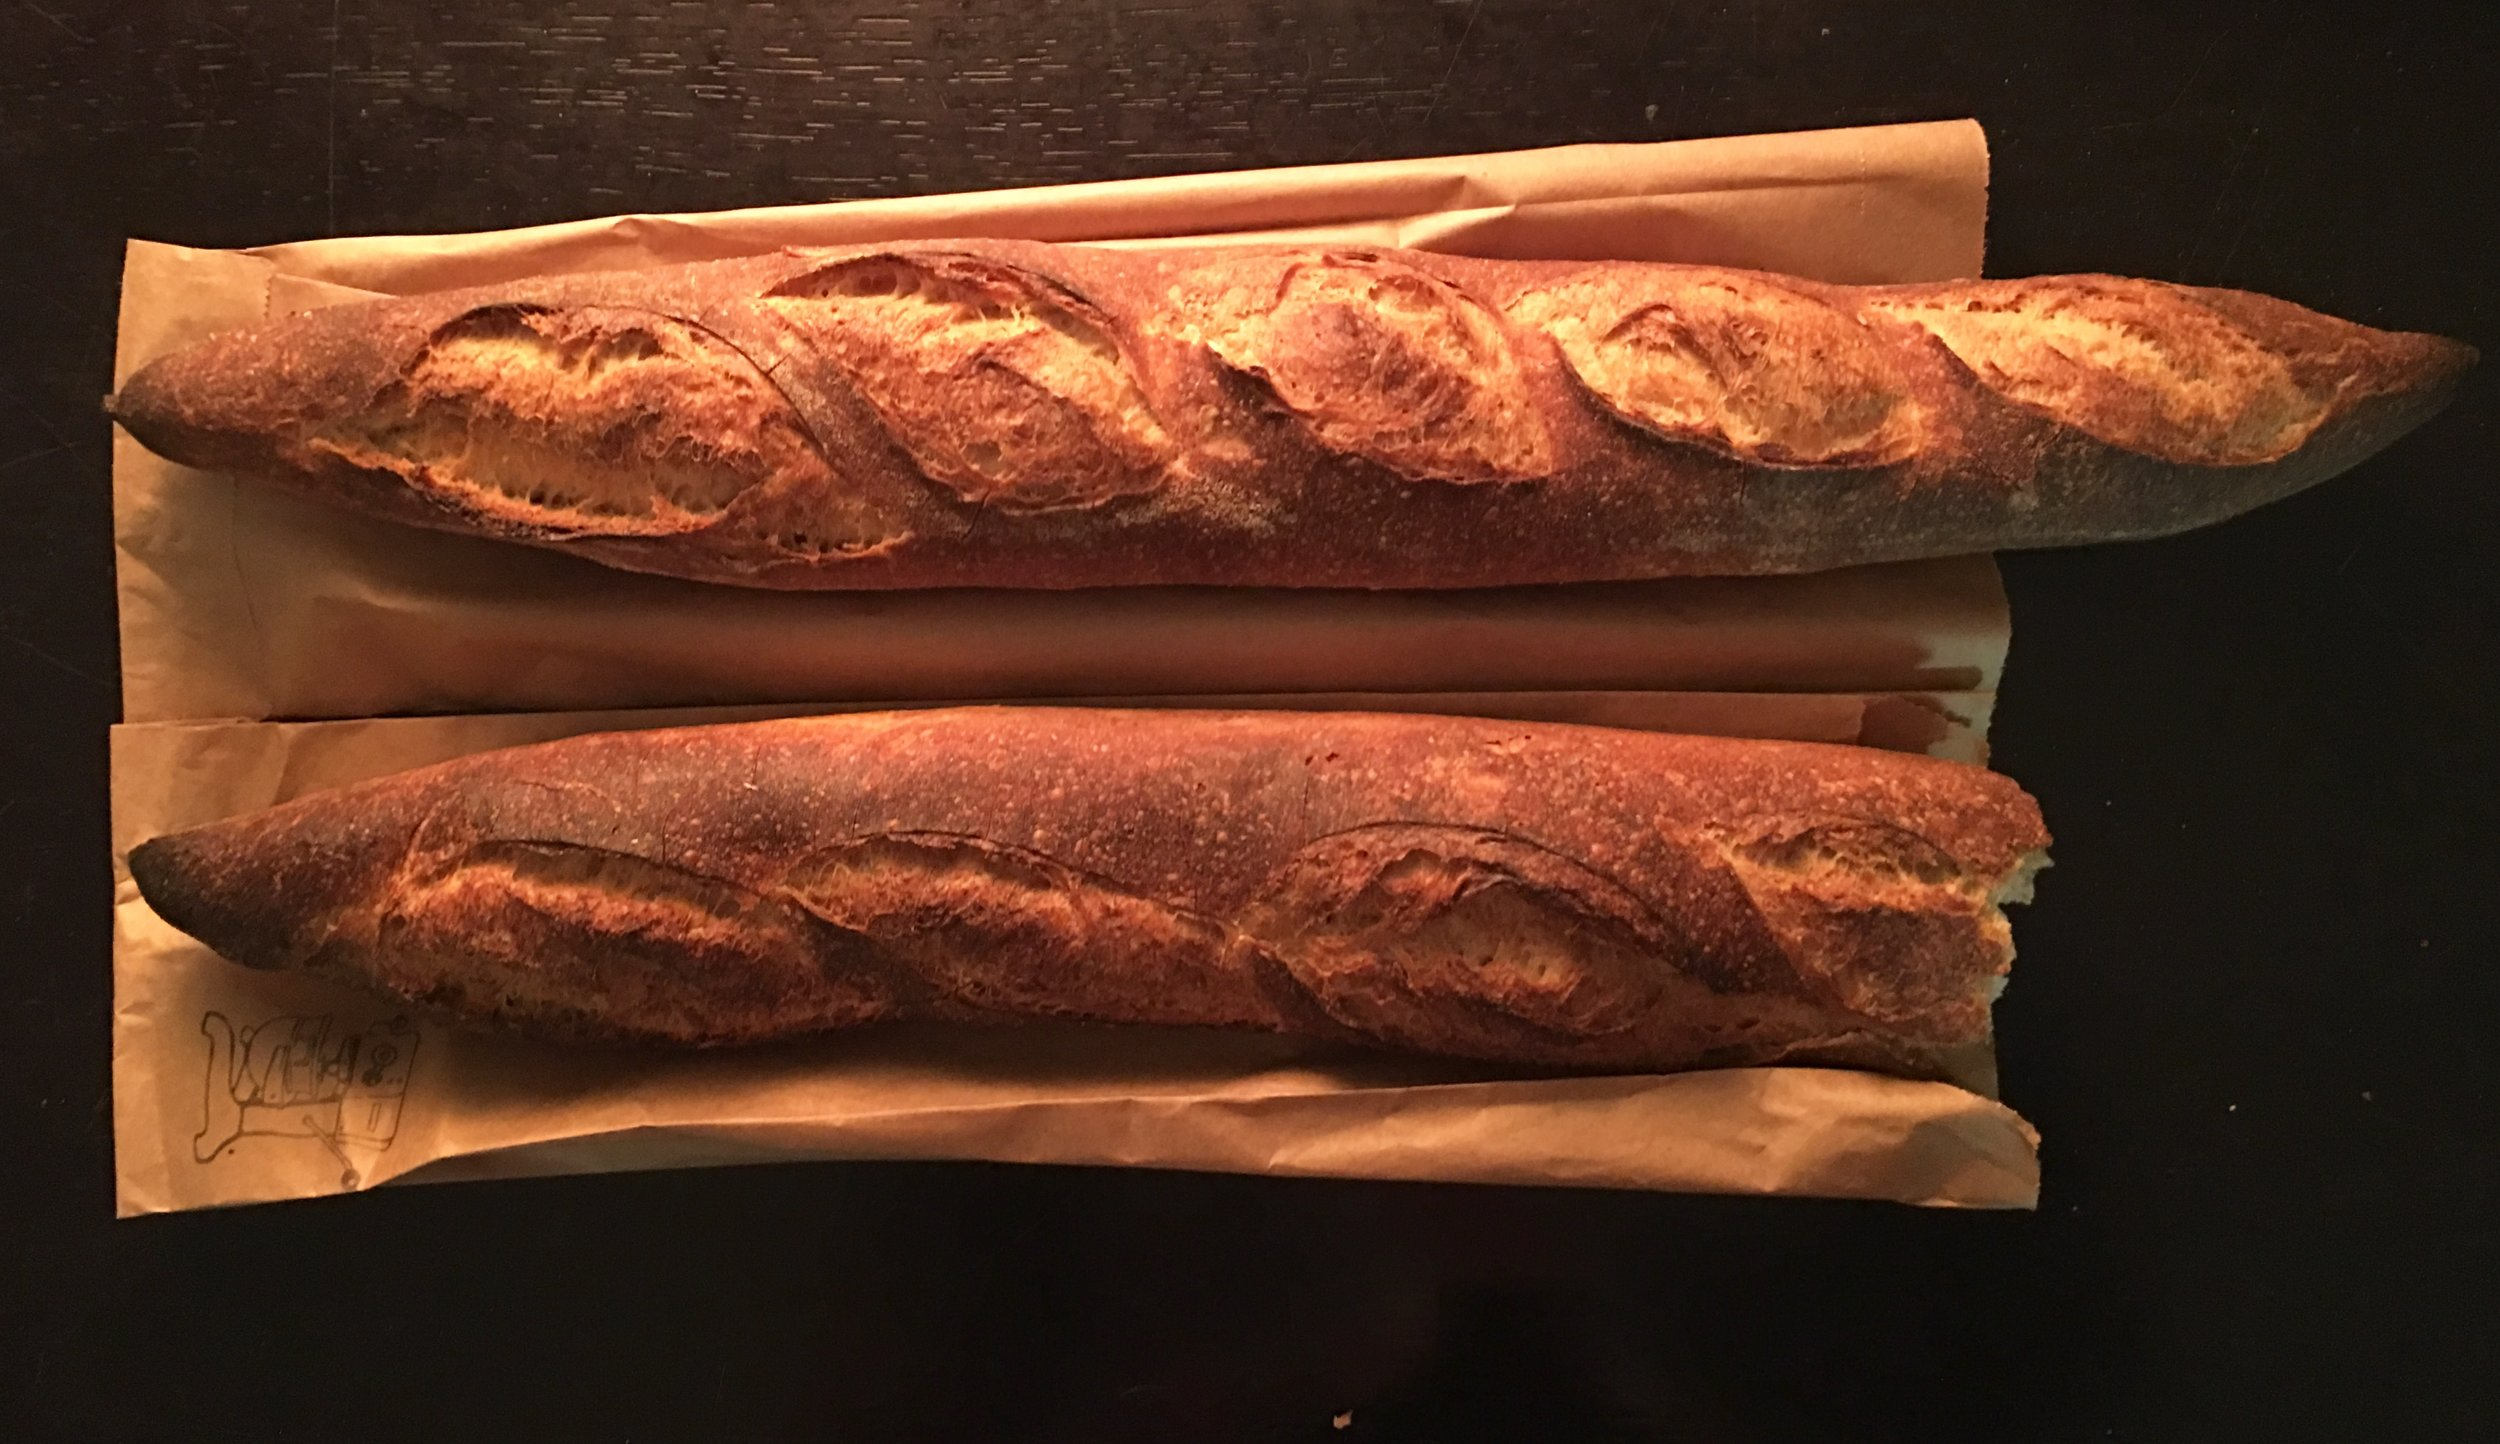 Behold, Machine Shop Boulangerie's baguette: As dark and delightful as the people meant to eat it.